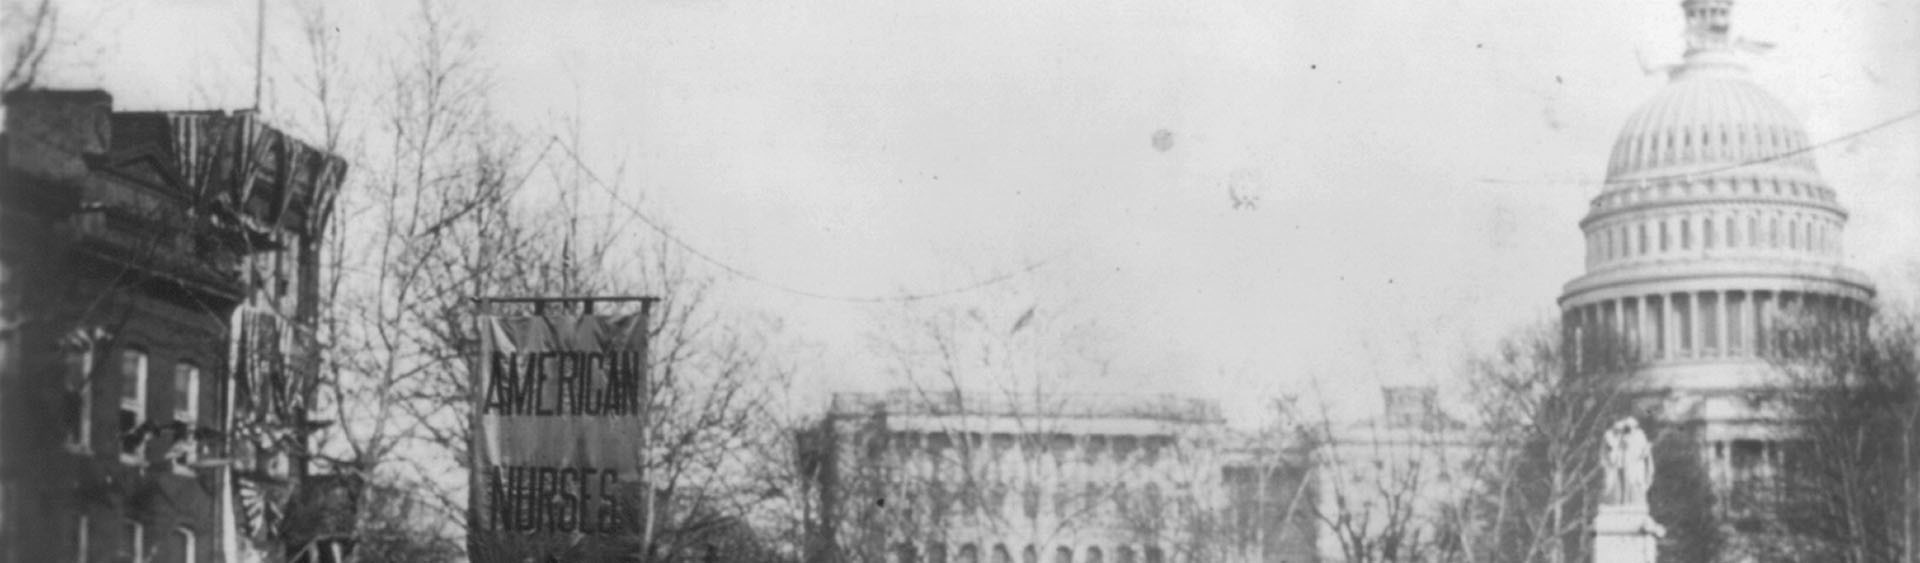 A black-and-white image with has been split into two pieces horiontally. This is the first piece. The image depicts a procession of female nurses in 1913, in Washington D.C., as they hold banners aloft which proclaim support of the suffragettes.